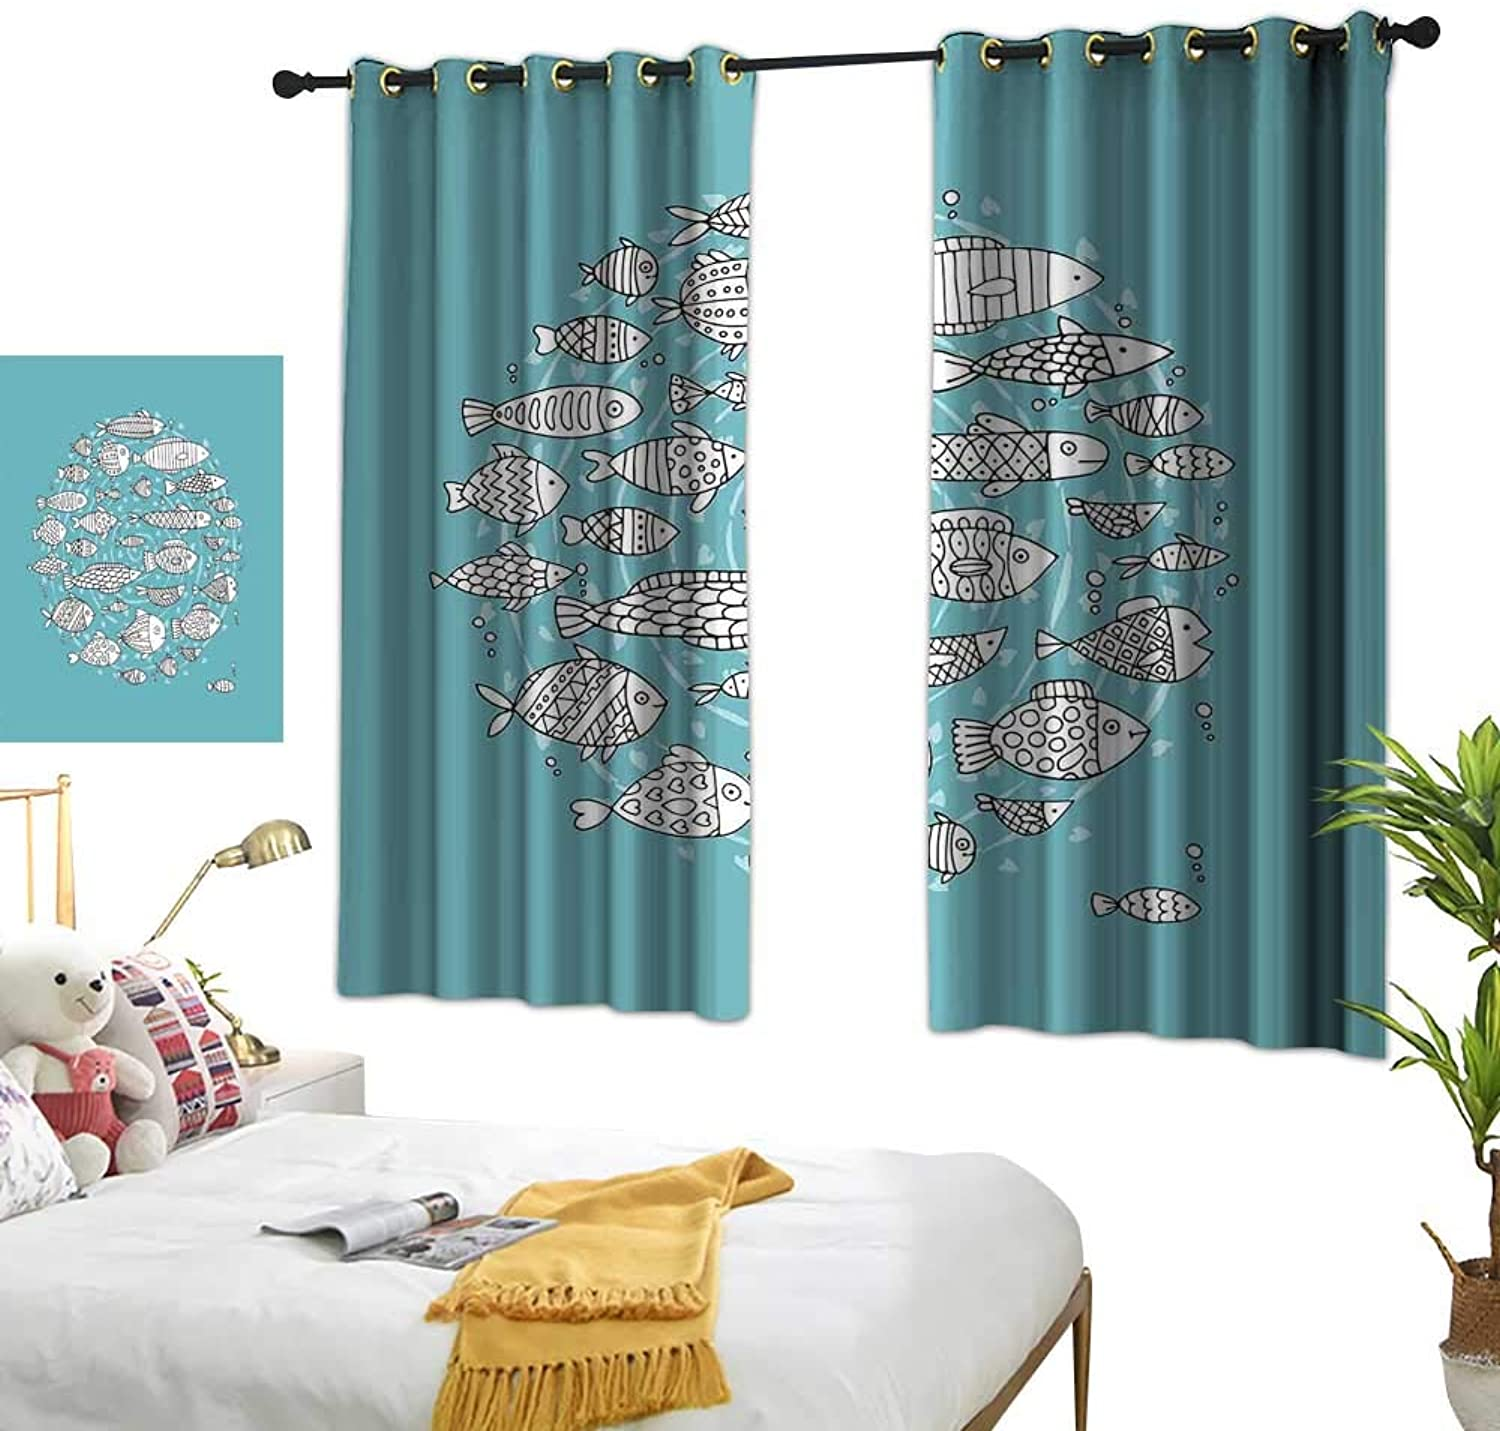 LsWOW Bedroom Curtains W55 x L45 Doodle,Baby Fish Community Swimming in The Ocean Kids Nursery Playroom Cartoon,Pale bluee and White BedroomRoom Darkening,Blackout Curtains Room Kid's Room